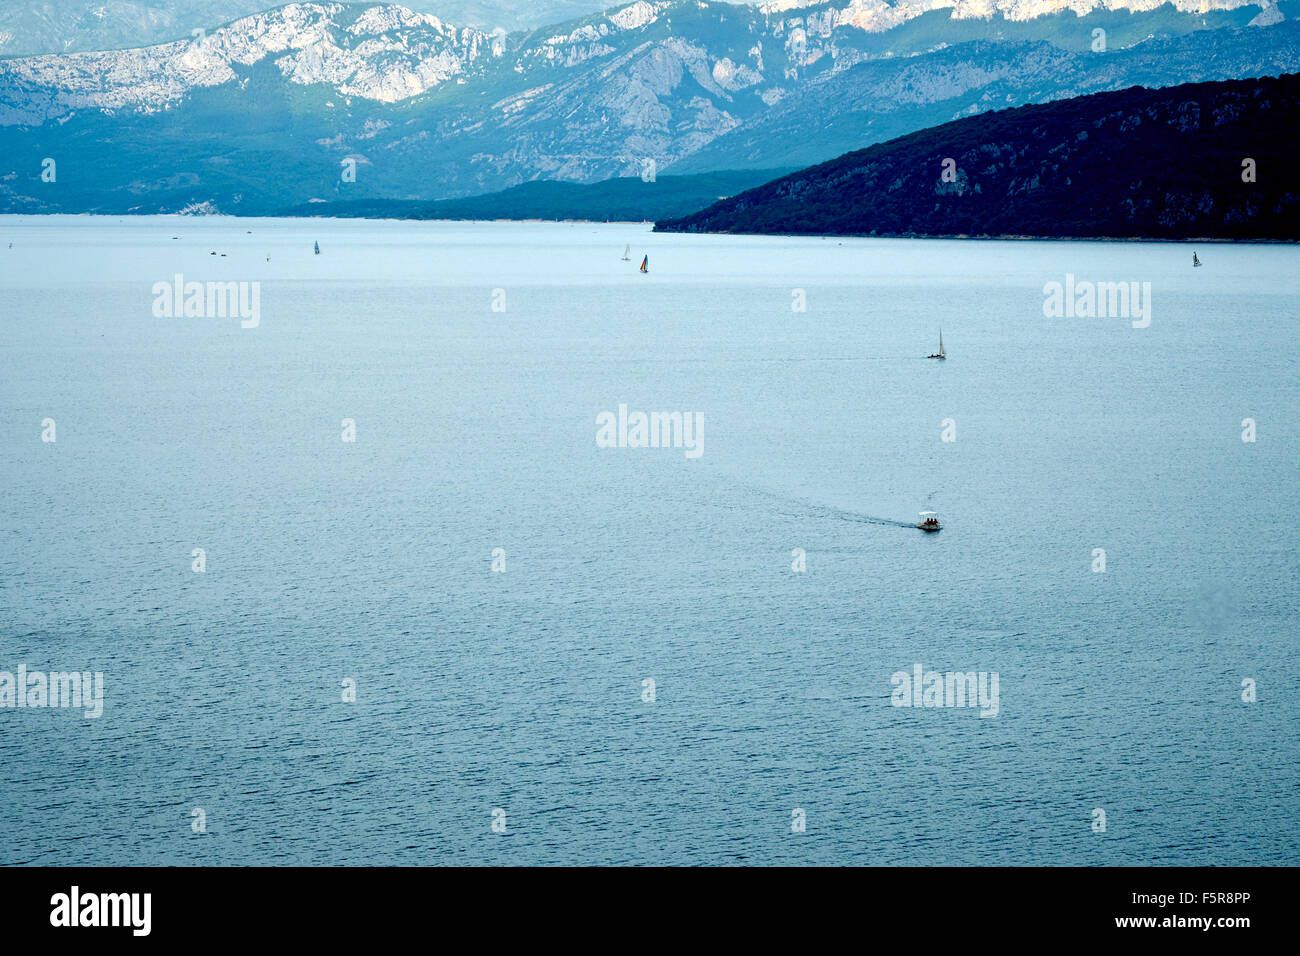 Boat on artificial lake, Lake of Sainte Croix, Var, France - Stock Image